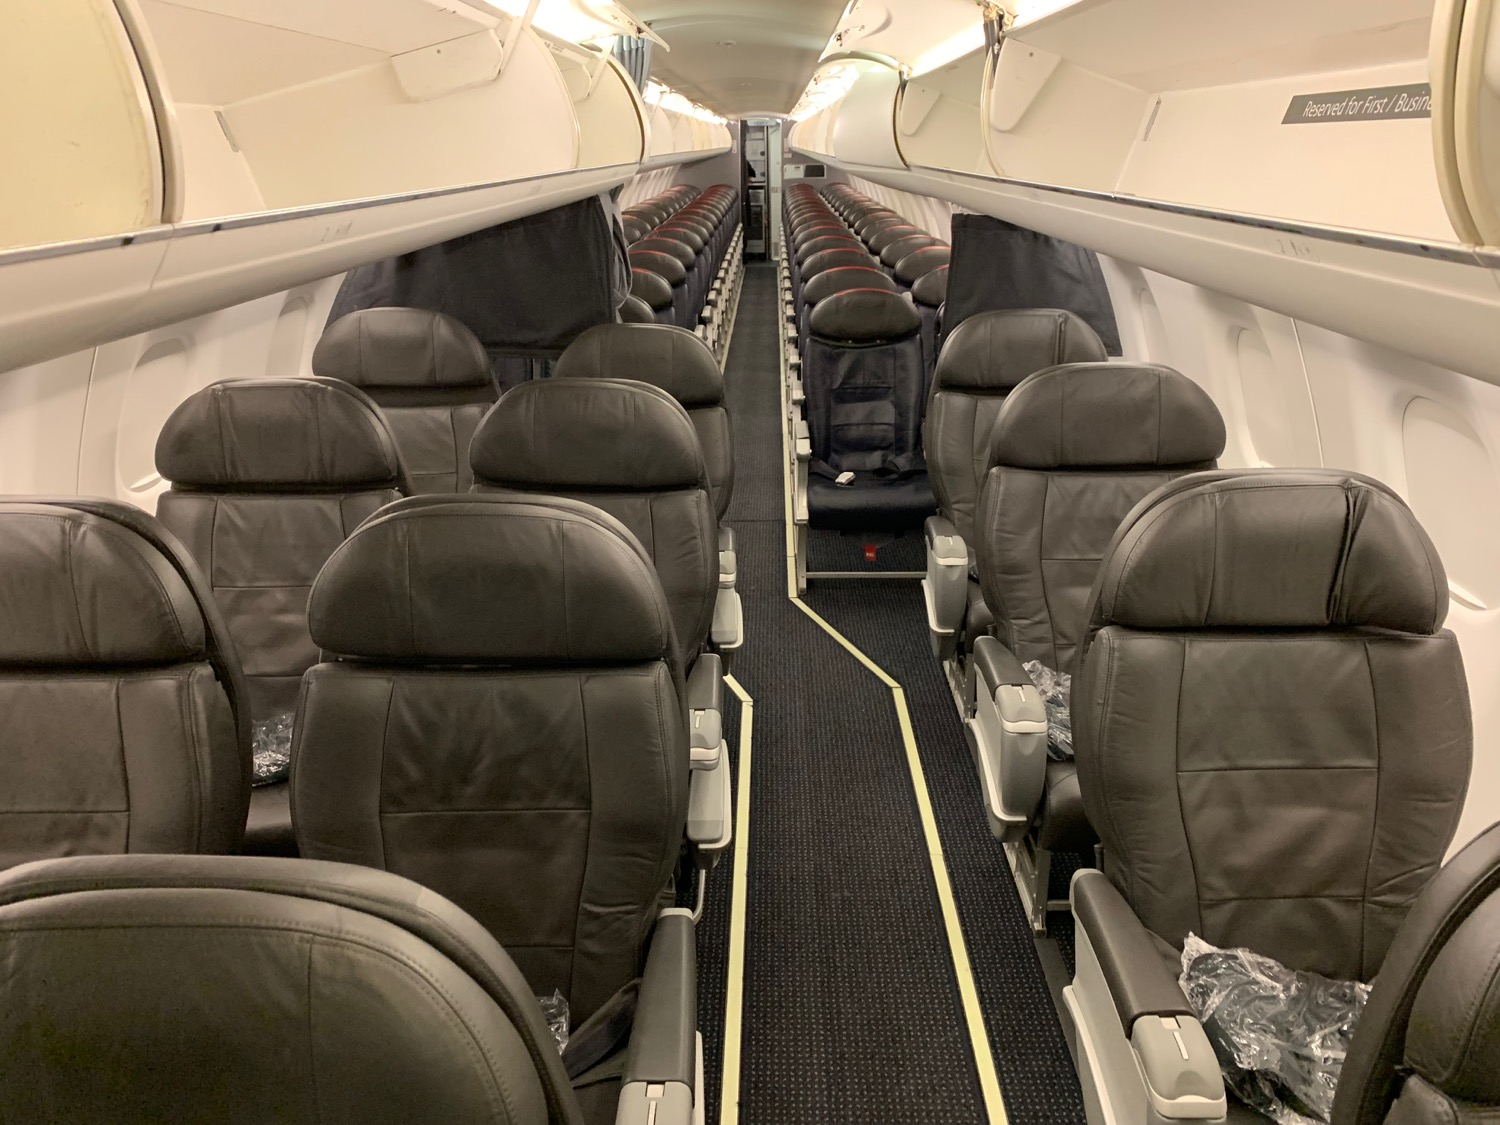 American Airlines Compass E175 First Class Review